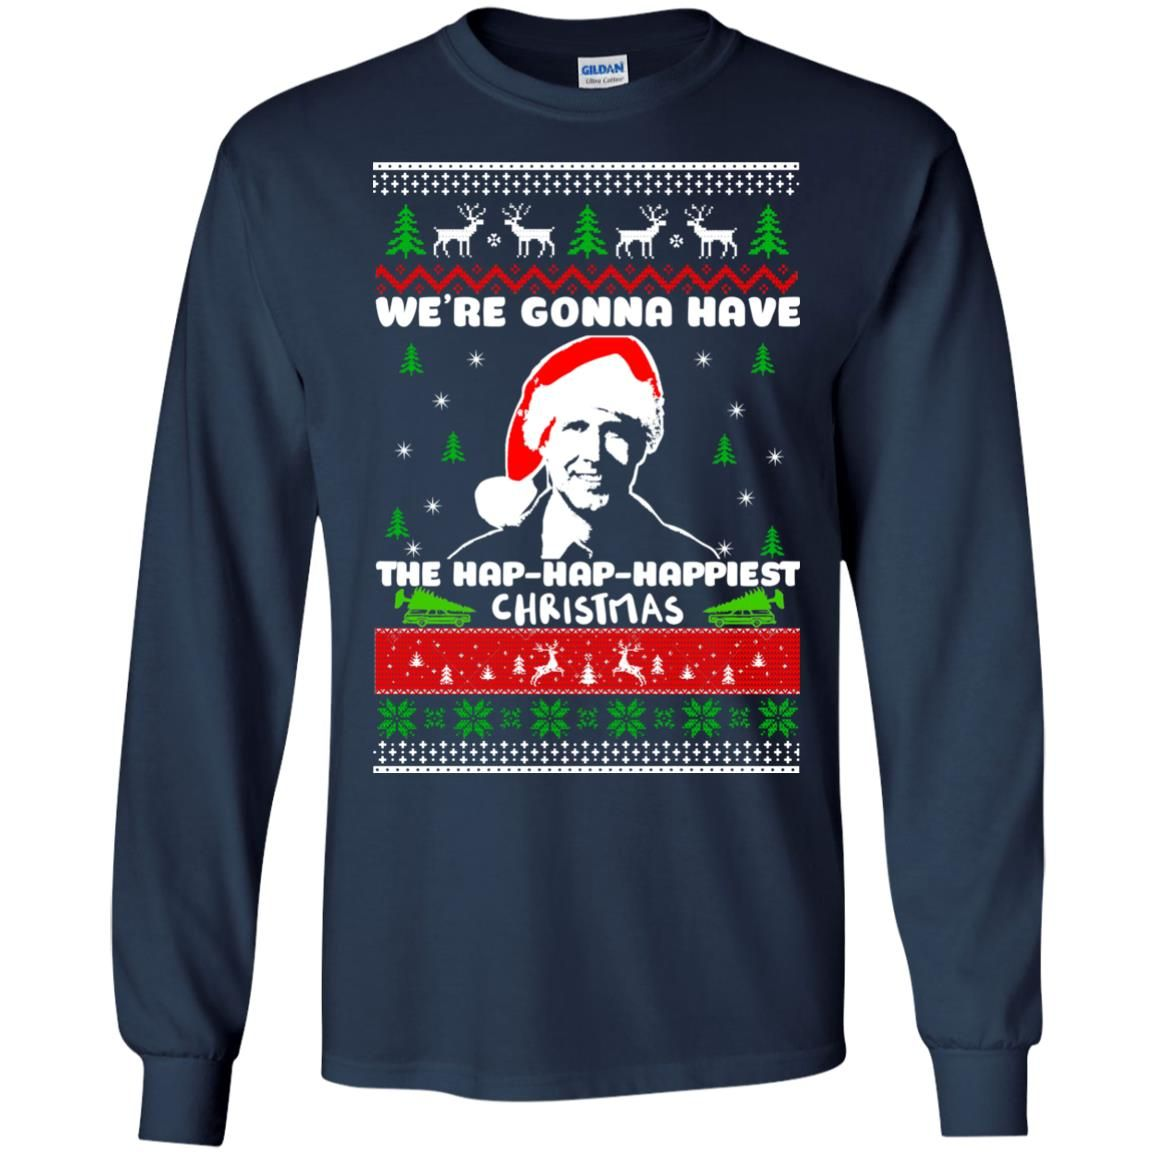 image 1744 - Christmas Vacation: We're gonna have the Hap-Hap-Happiest Christmas sweater, hoodie